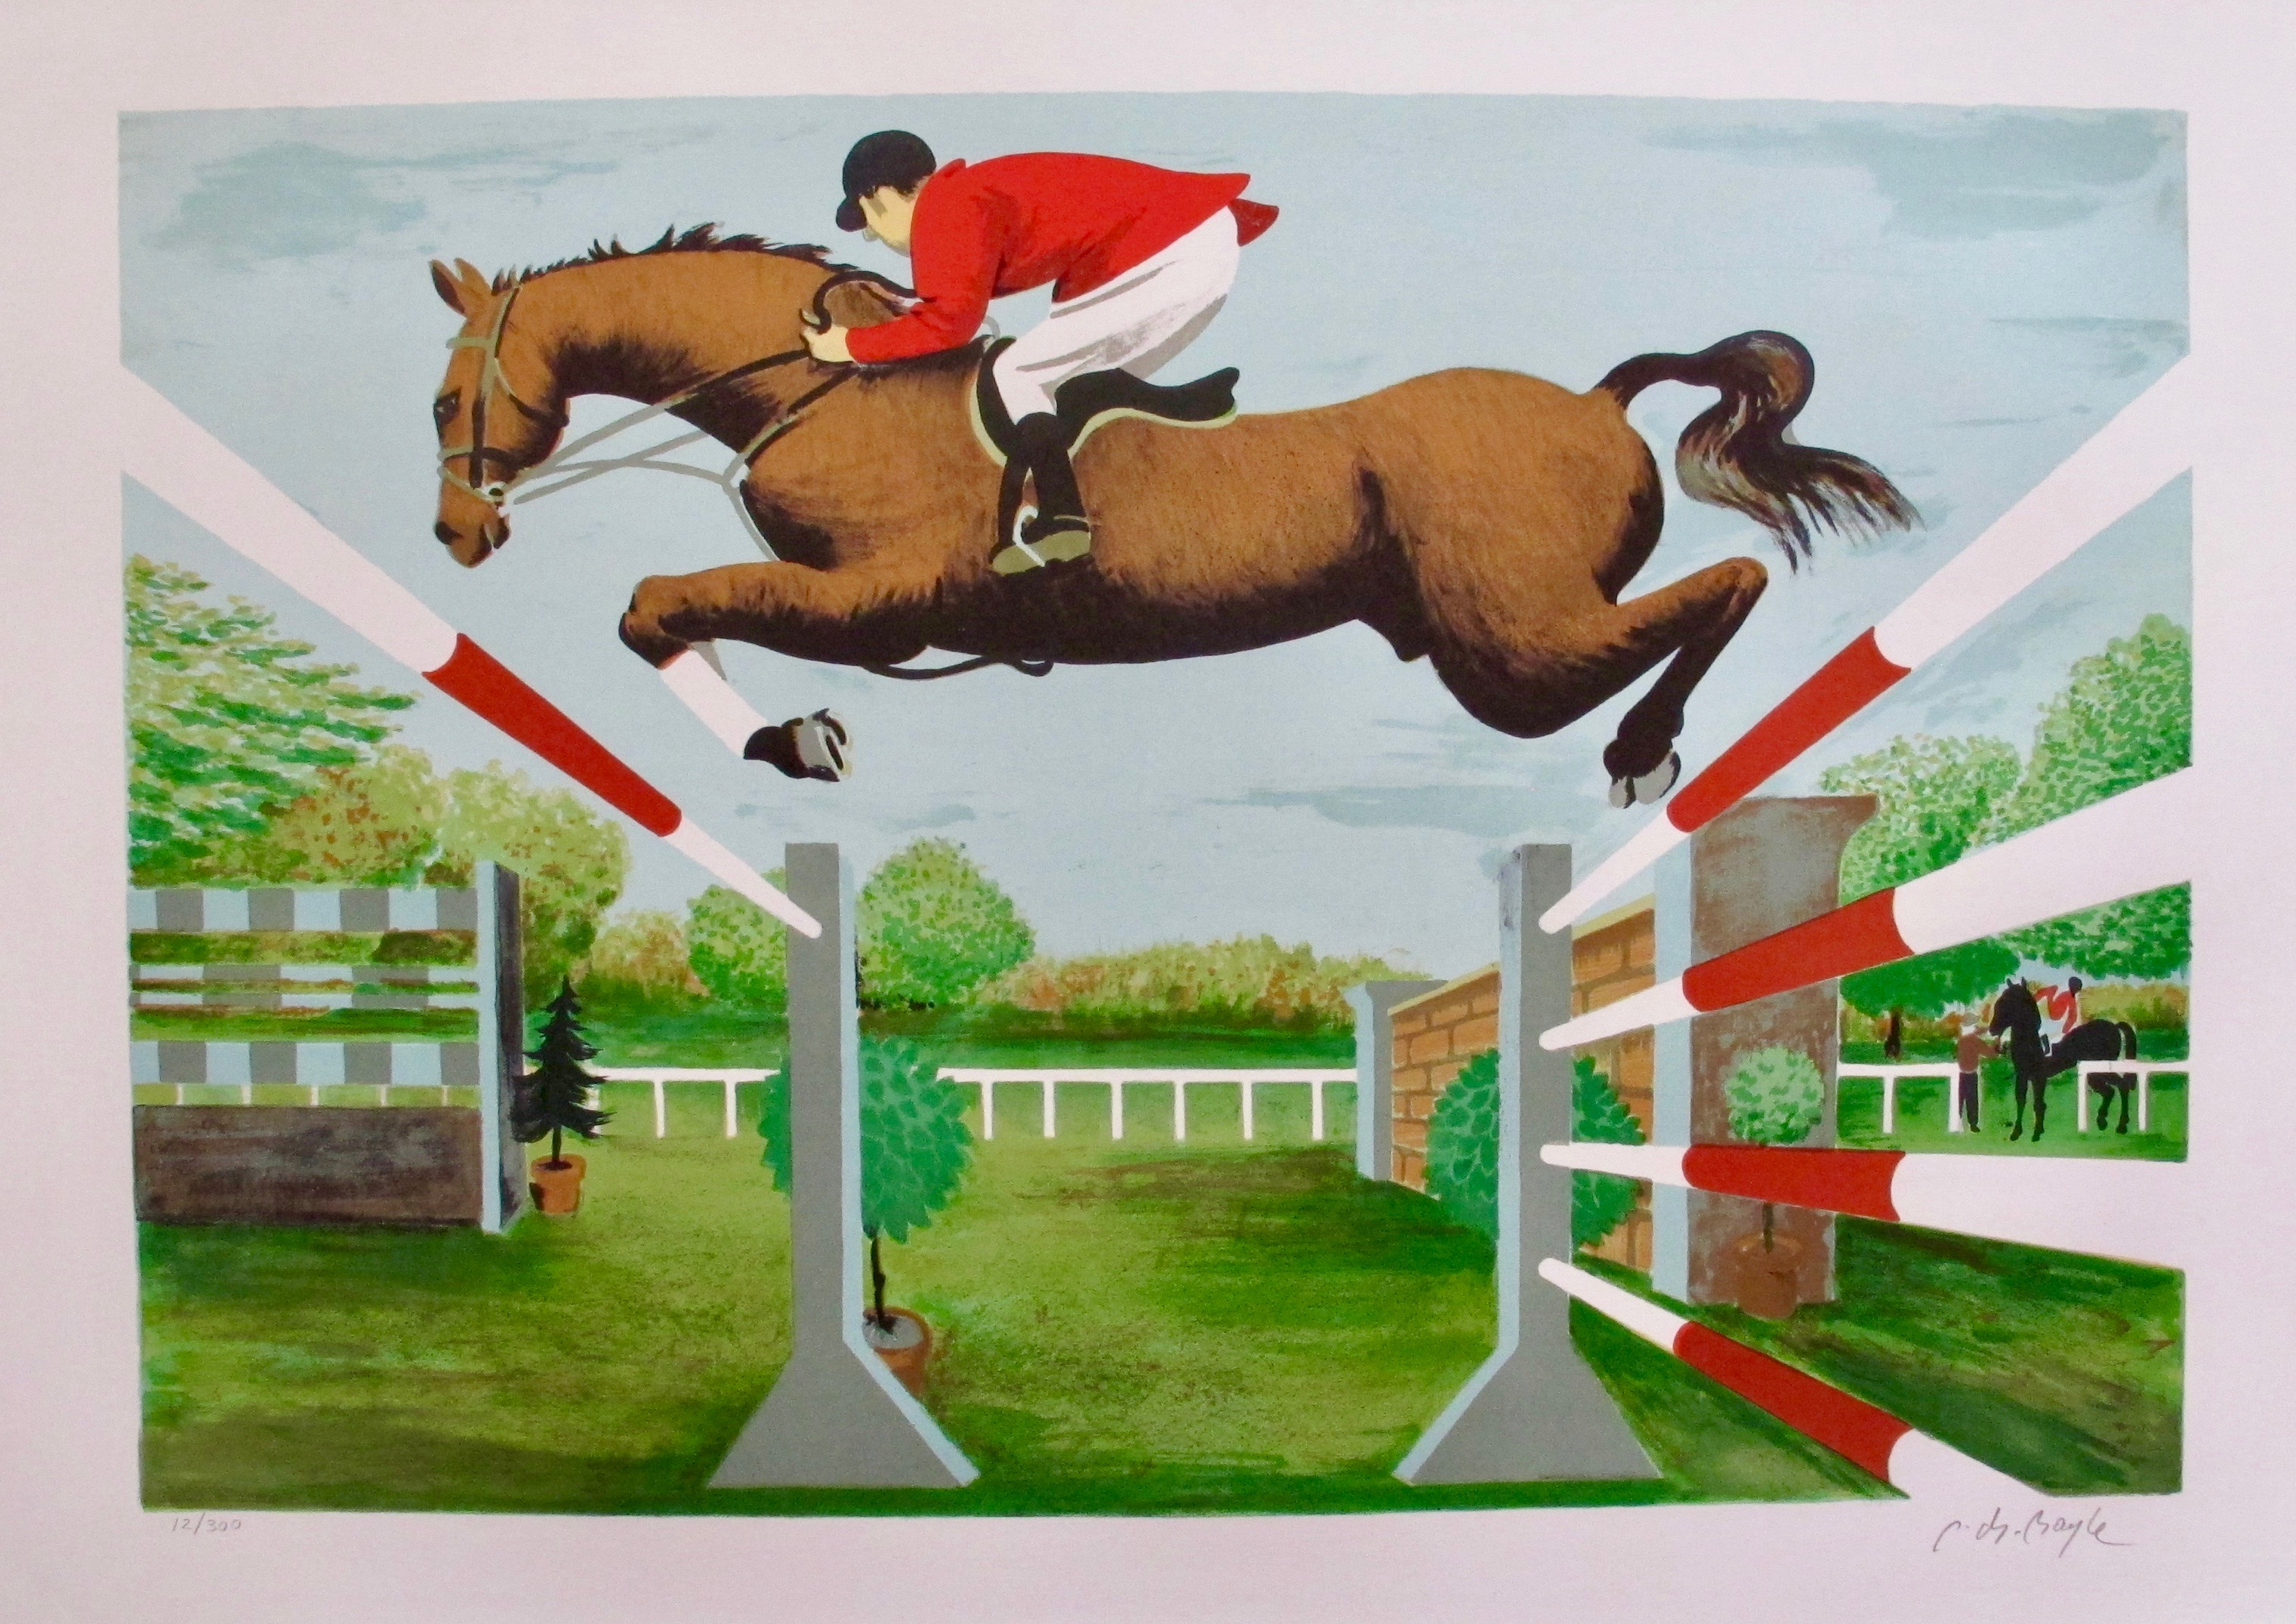 PIERRE CHARLES BAYLE Obstacle Course Hand Signed Lithograph Horse Racing Art